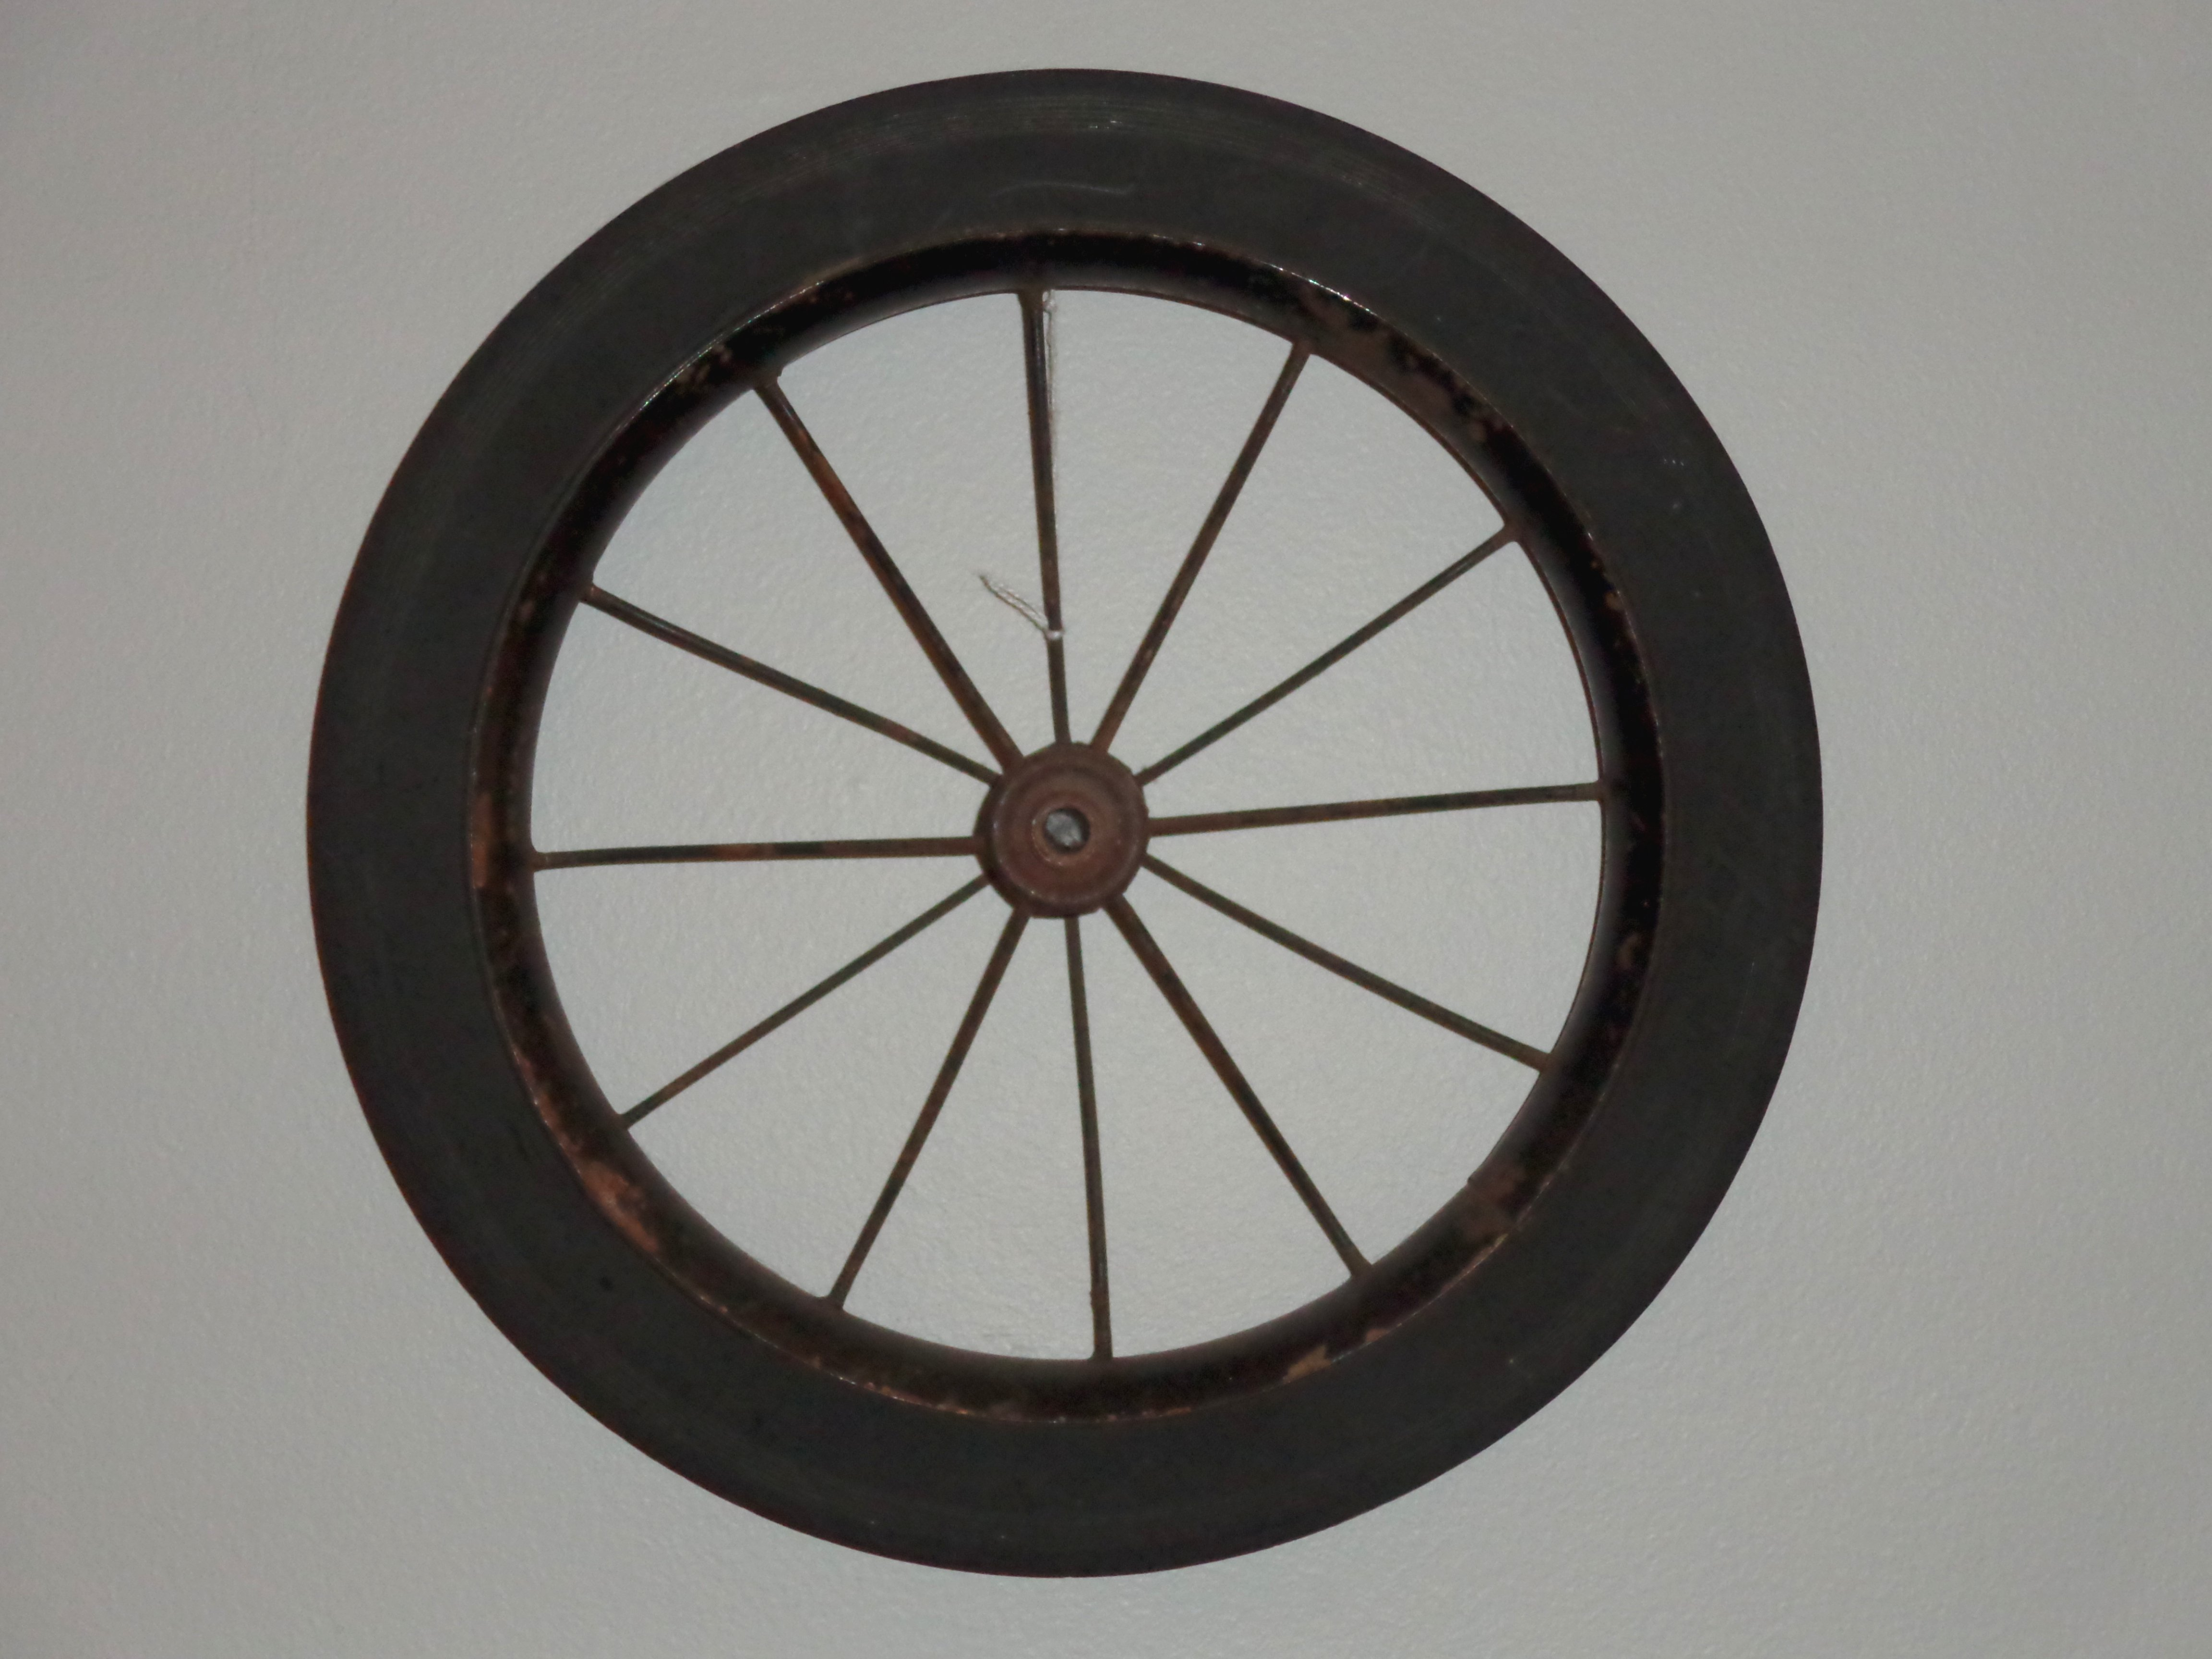 Wagon Wheel Decoration Hung On Wall Picture Free